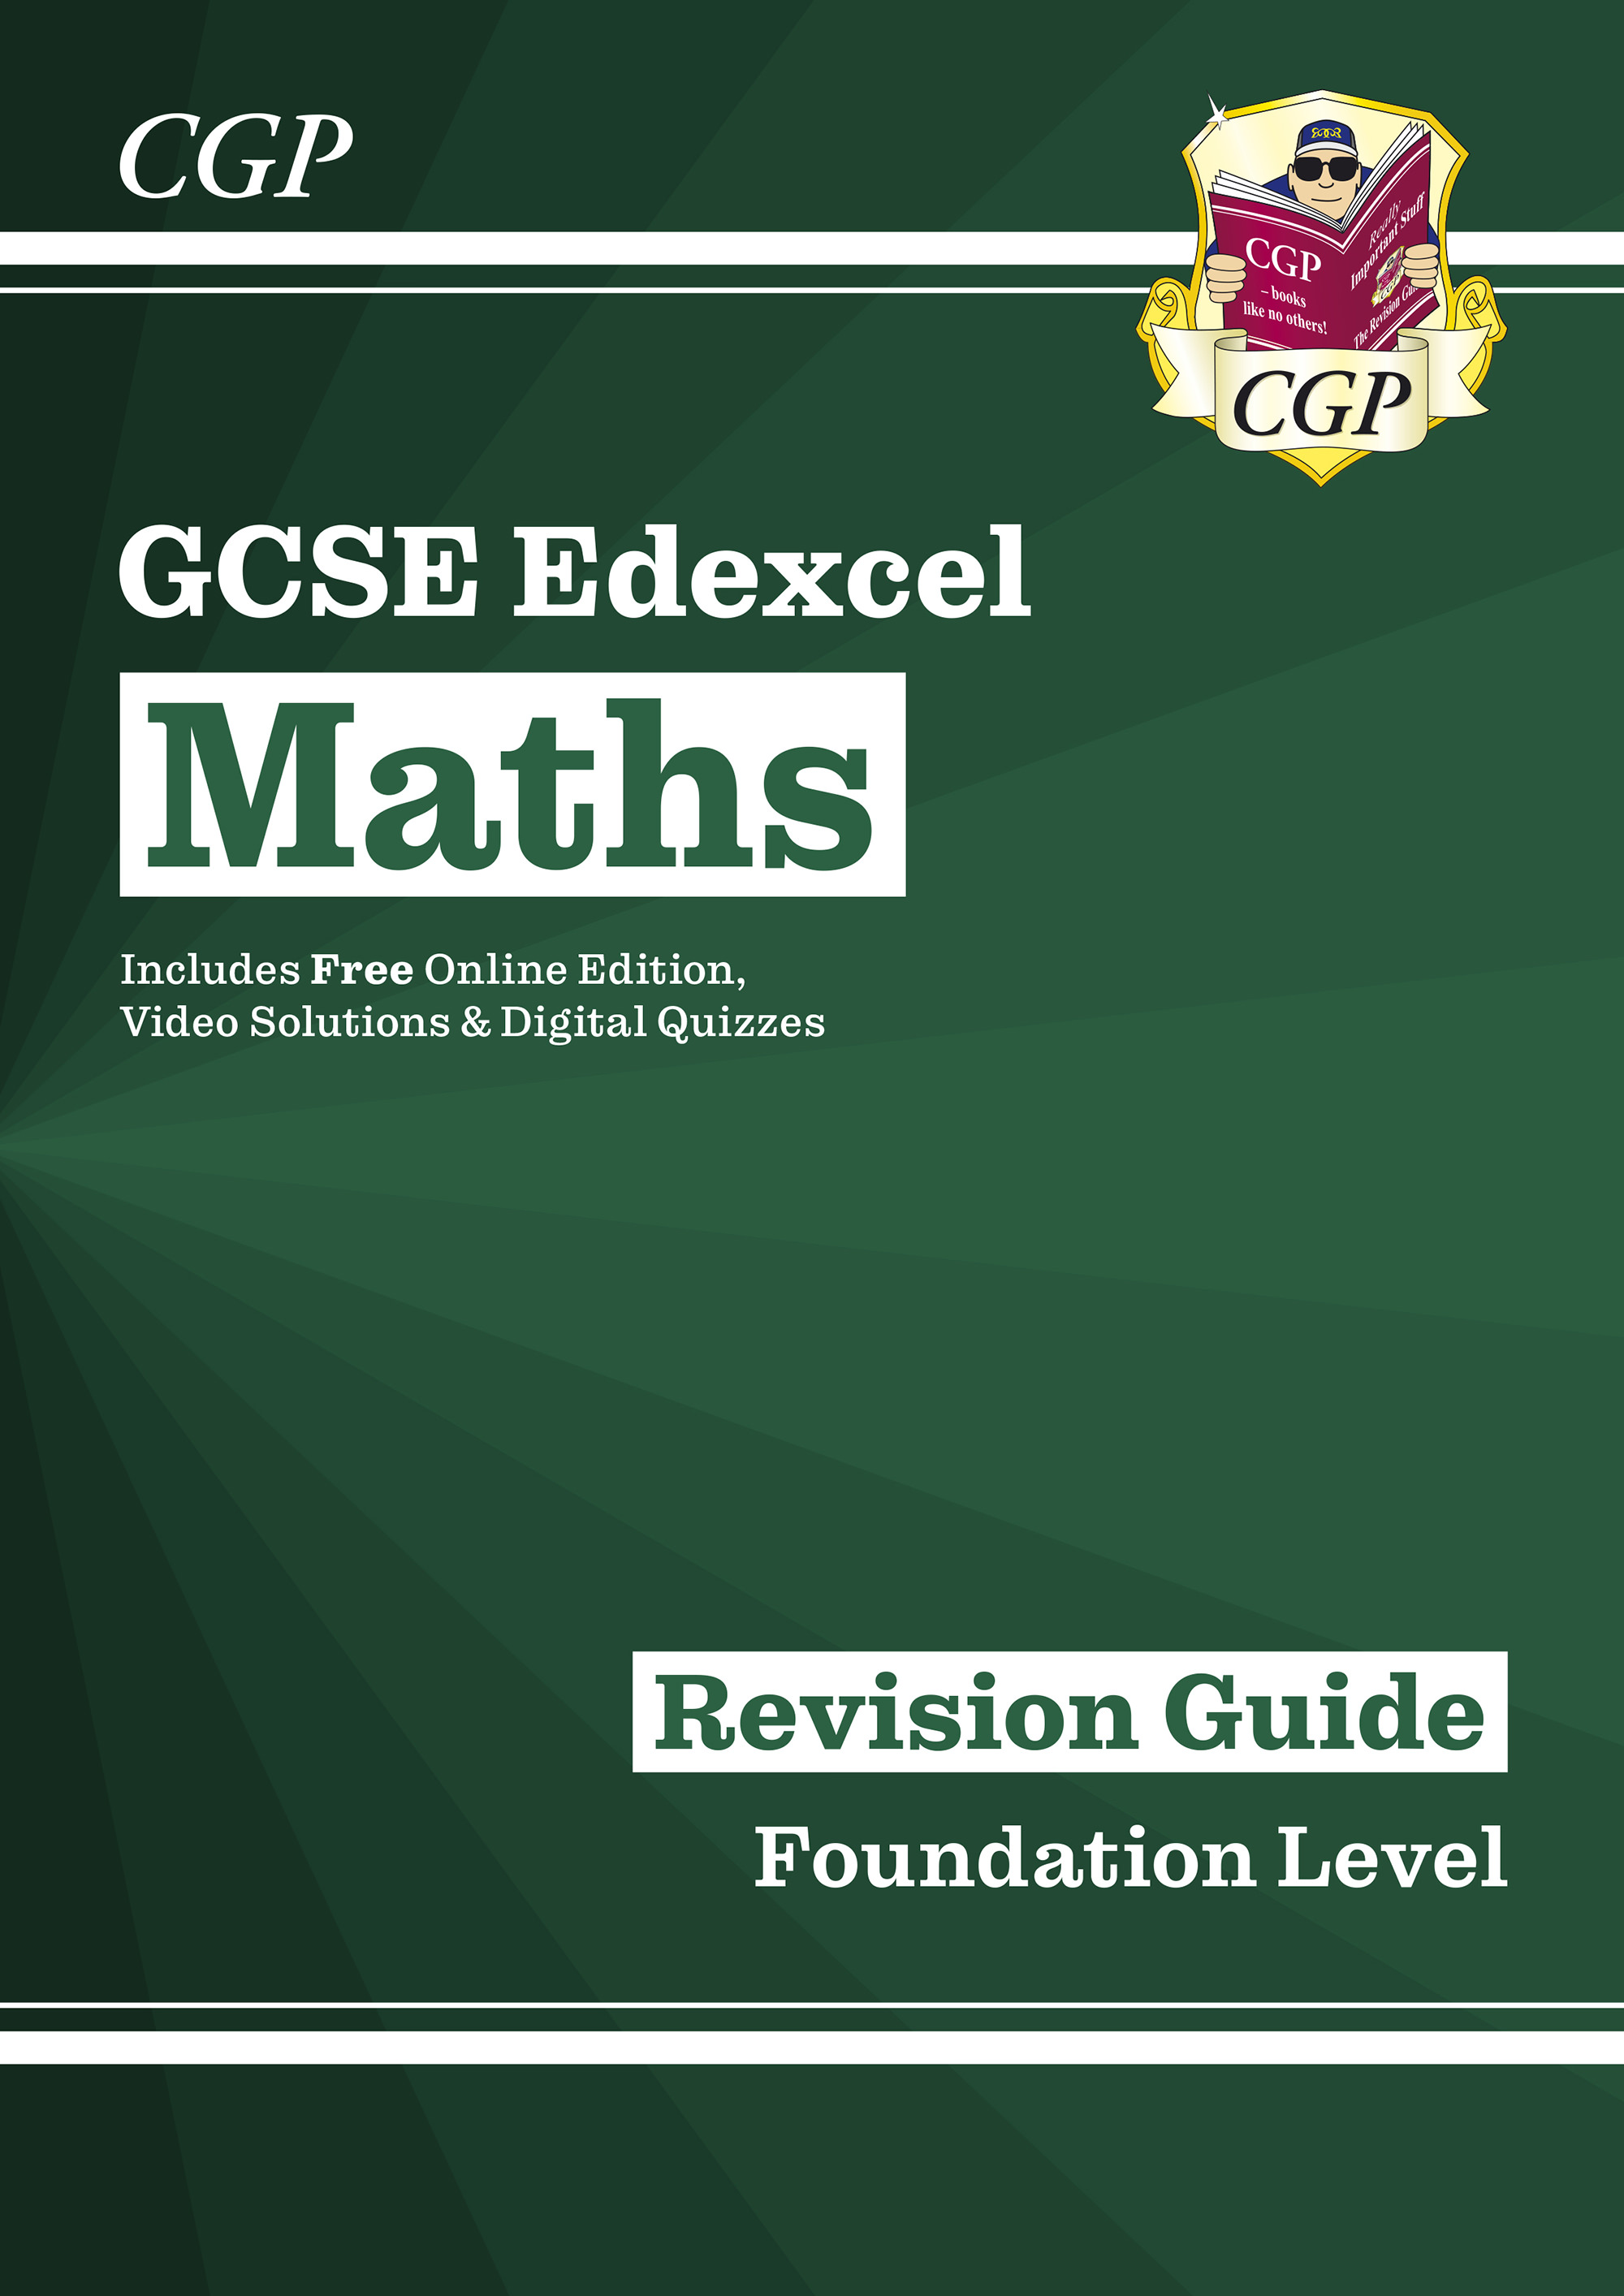 MXFR47D - New 2021 GCSE Edexcel AQA Revision Guide: Foundation Online Edition inc Videos & Quizzes